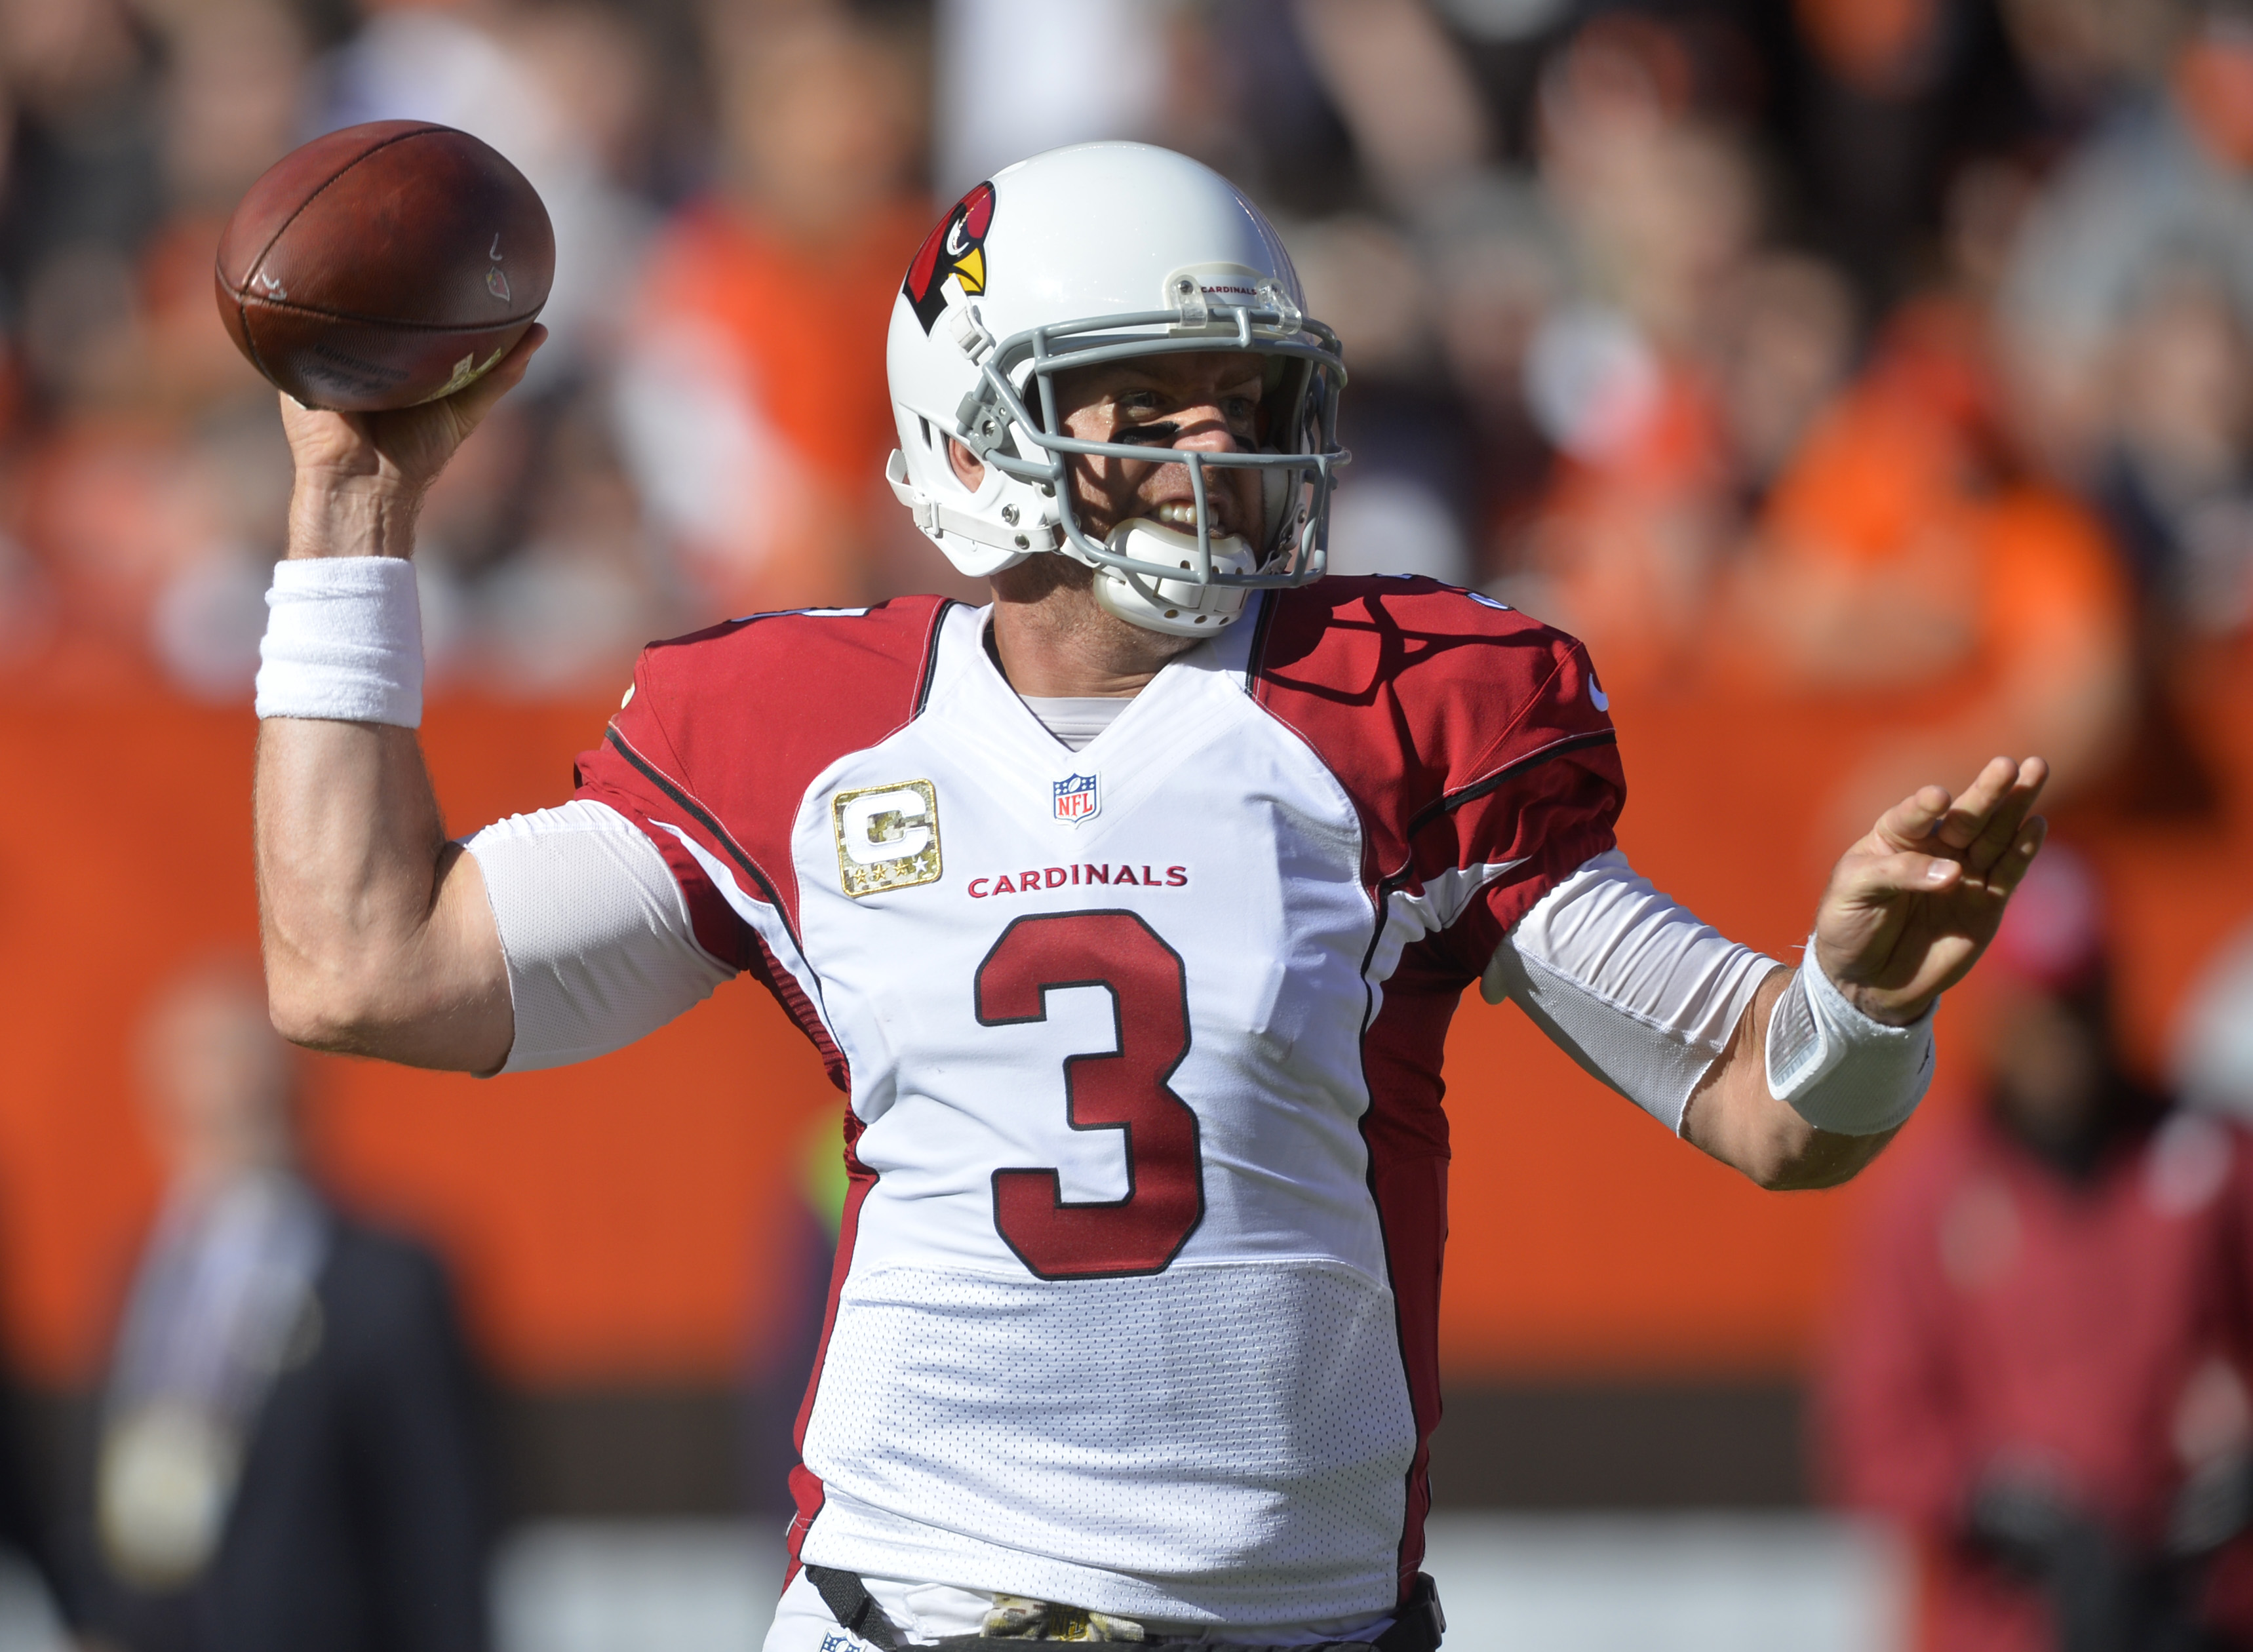 Arizona Cardinals quarterback Carson Palmer prepares to throw in the first half of an NFL football game against the Cleveland Browns, Sunday, Nov. 1, 2015, in Cleveland. (AP Photo/David Richard)